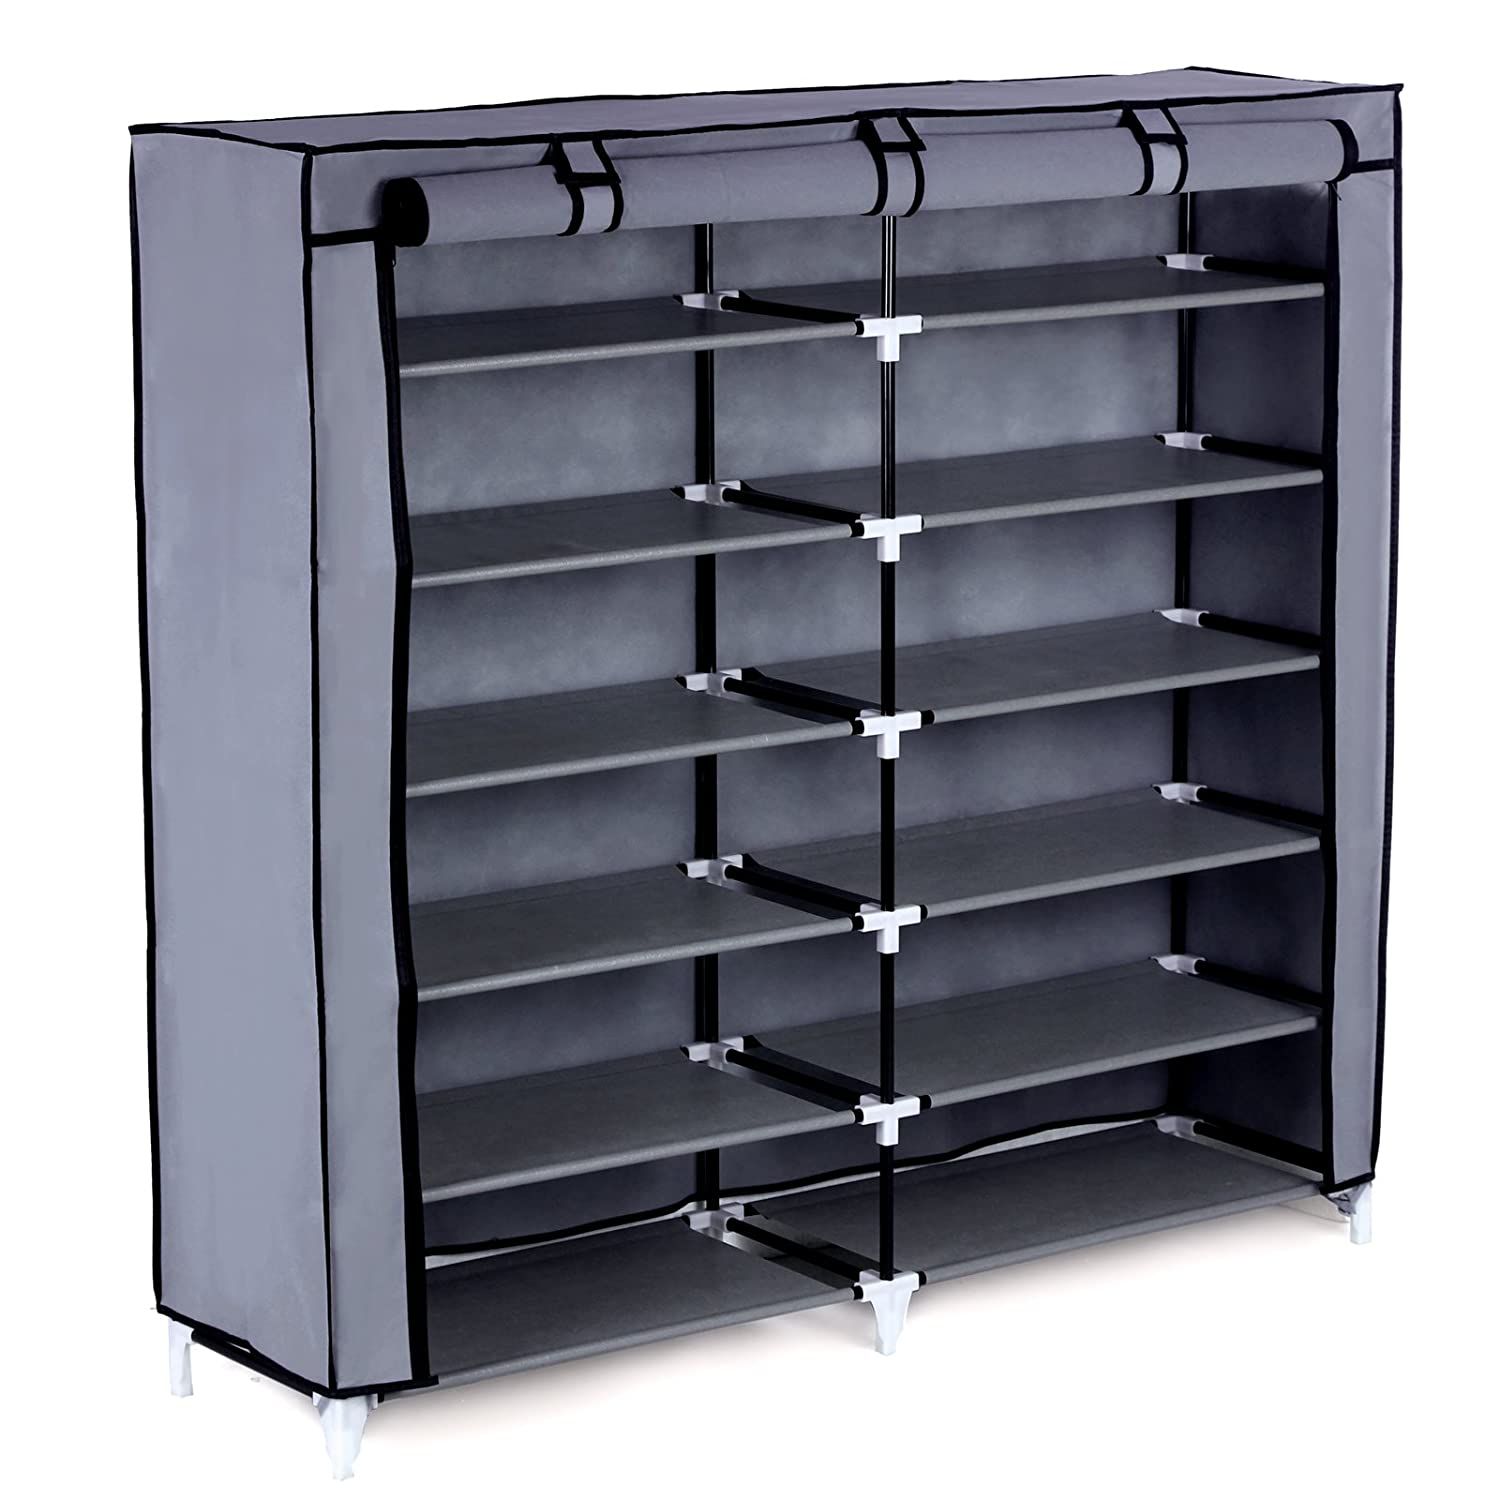 top 10 best shoe rack organizers reviews 2016 2017 on flipboard by matilda. Black Bedroom Furniture Sets. Home Design Ideas